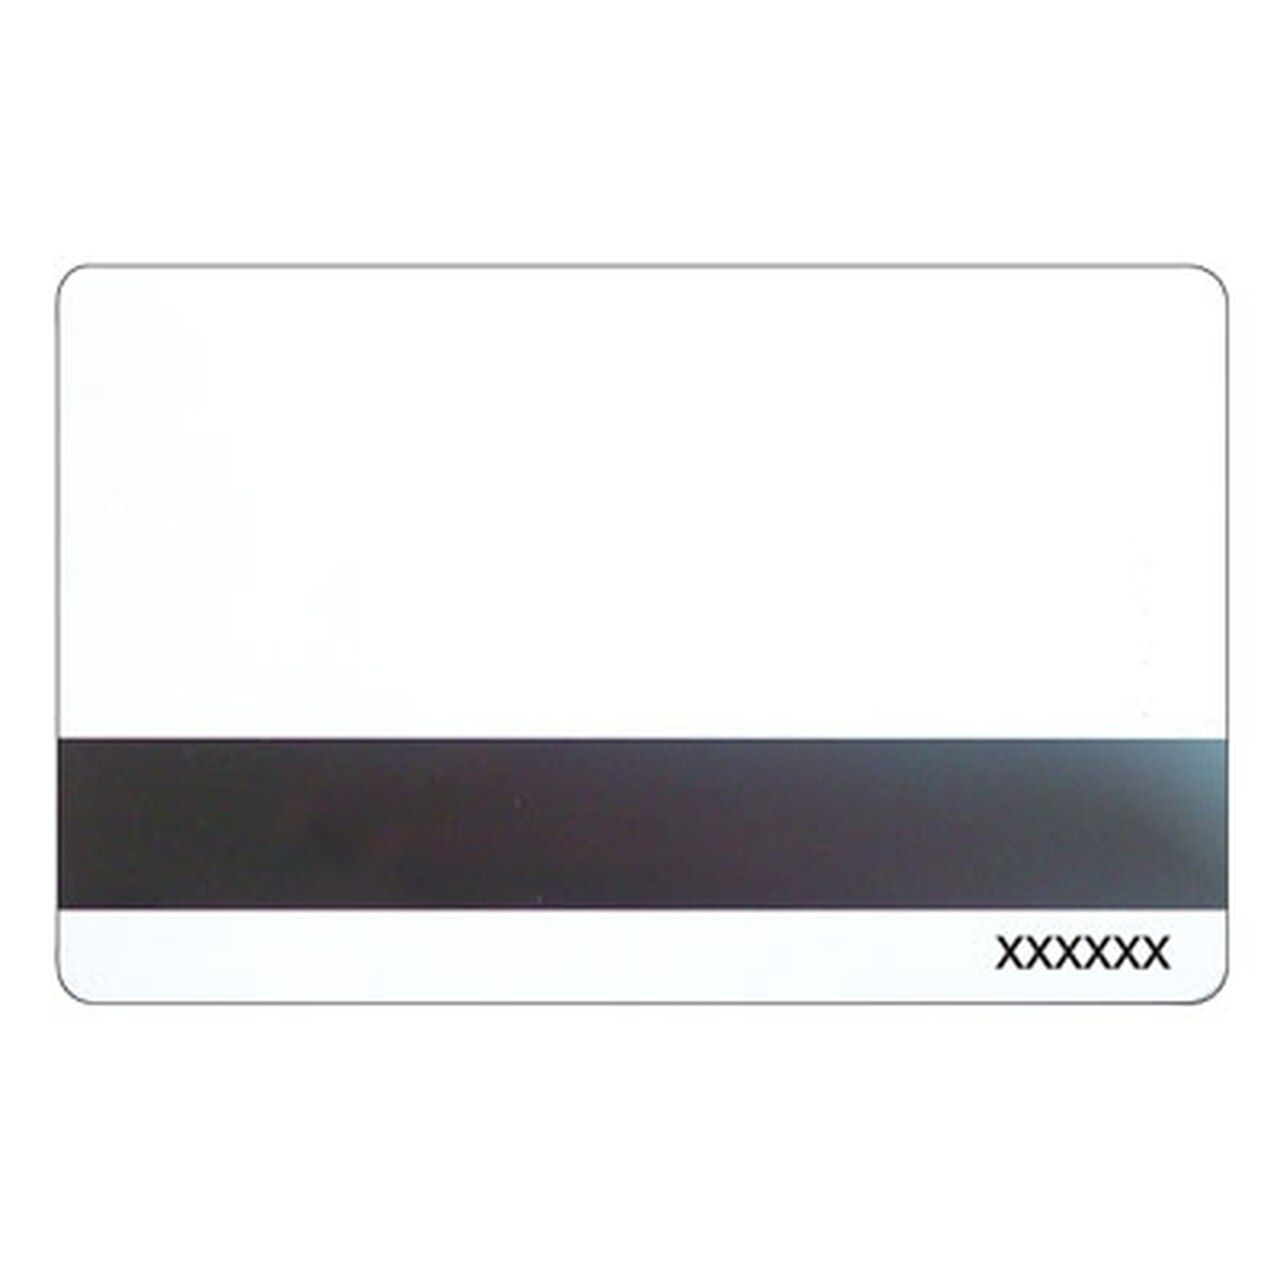 OmniClass� Prox PVC Card with Magnetic Stripe